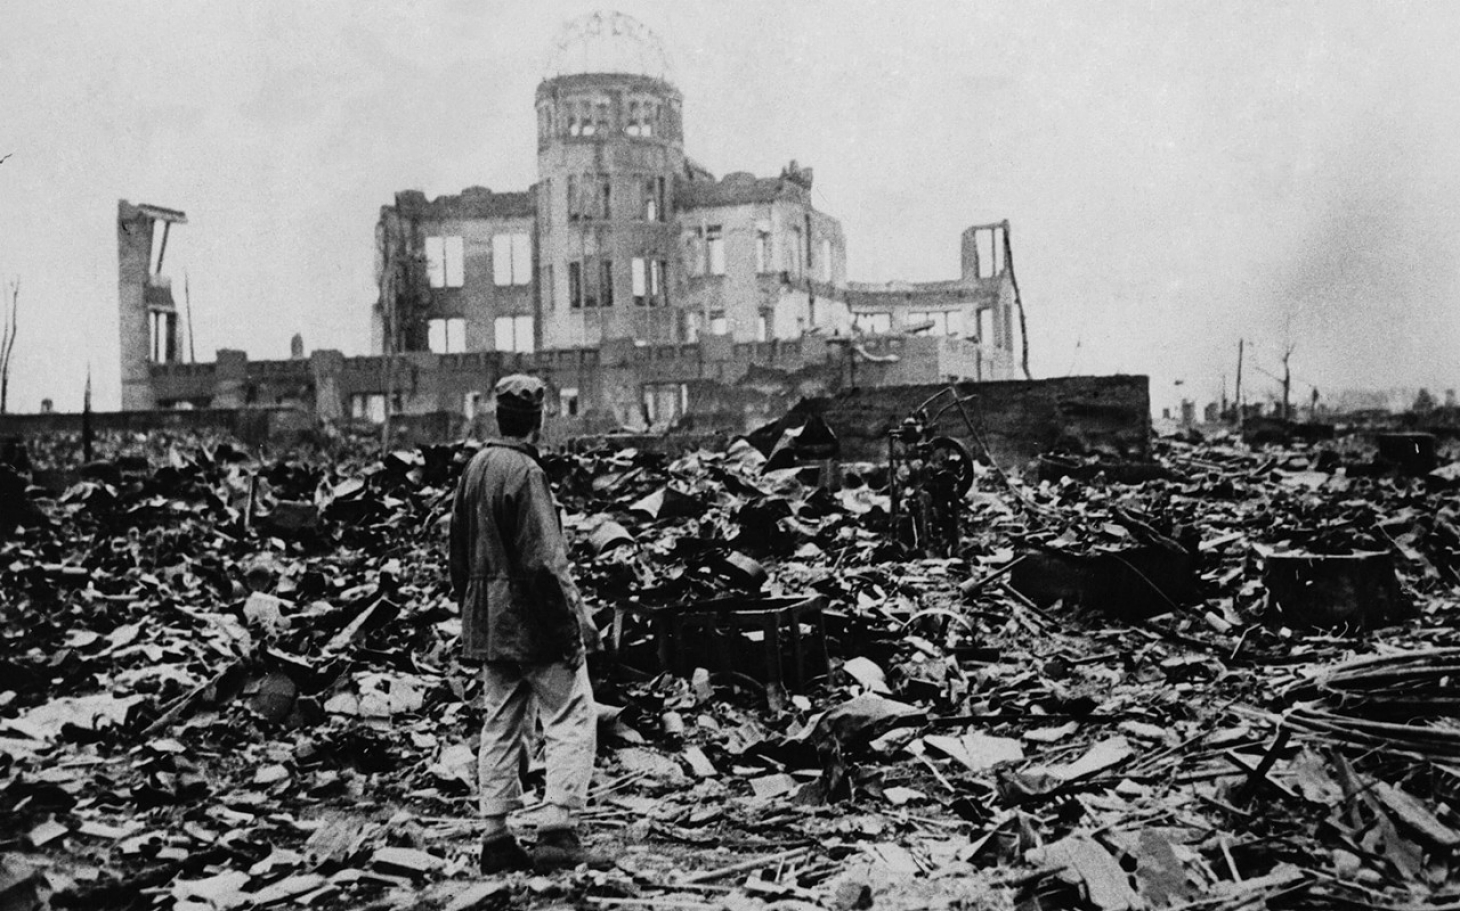 hiroshima and history of bombing civilians al jazeera america